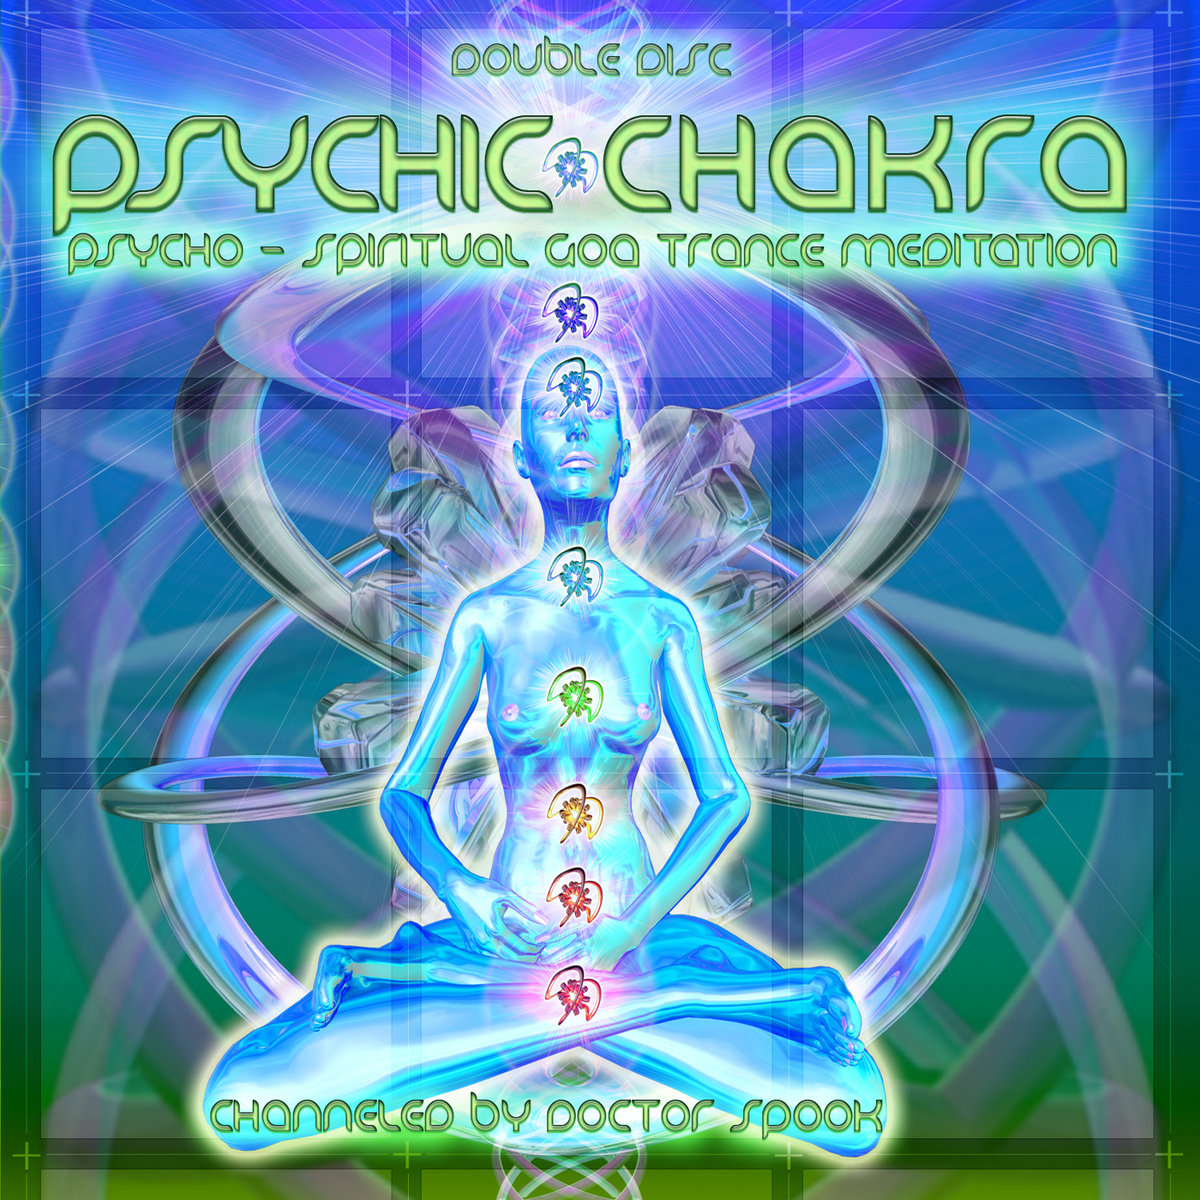 Shapestatic - Real Experience @ 'Various Artists - Psychic Chakra (Channeled by Dr. Spook)' album (electronic, psychic chakra)